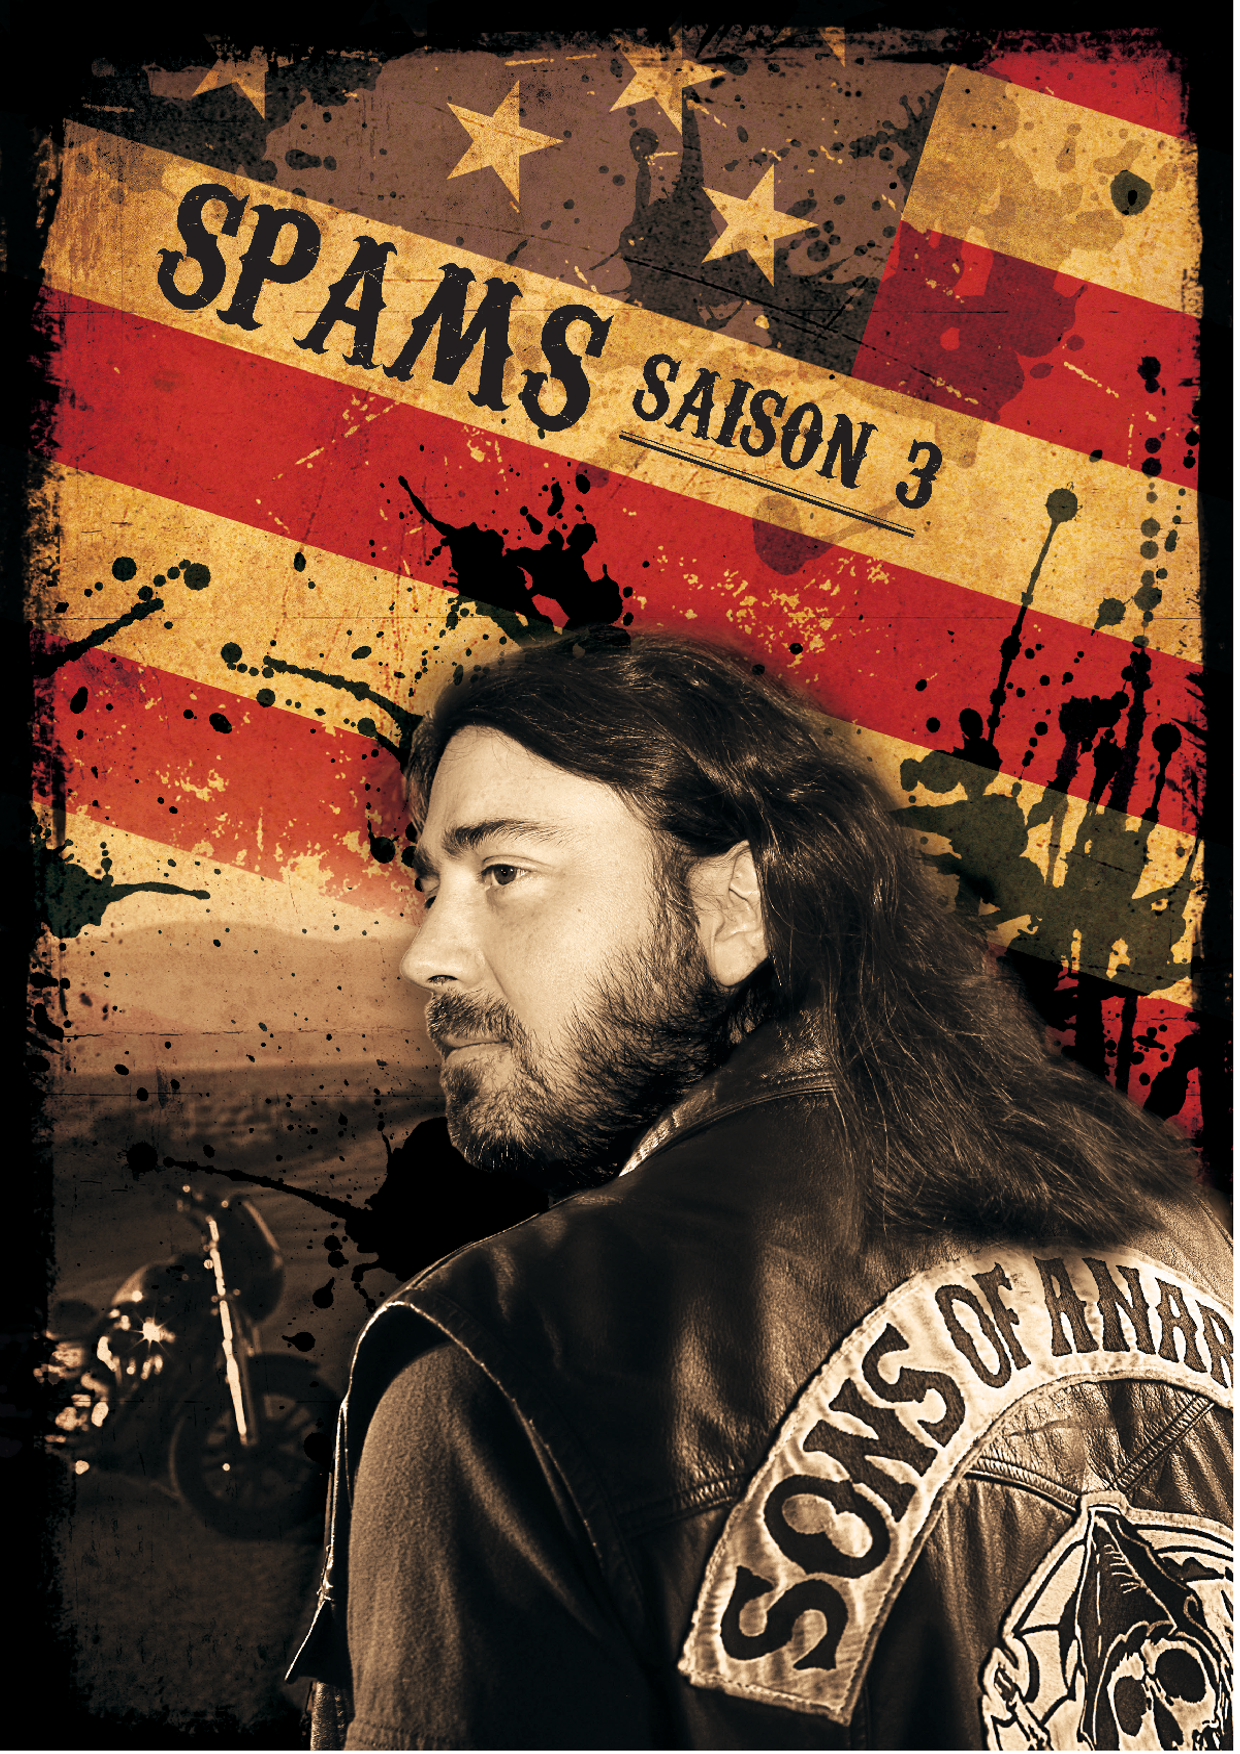 Spams Tof sons of anarchy